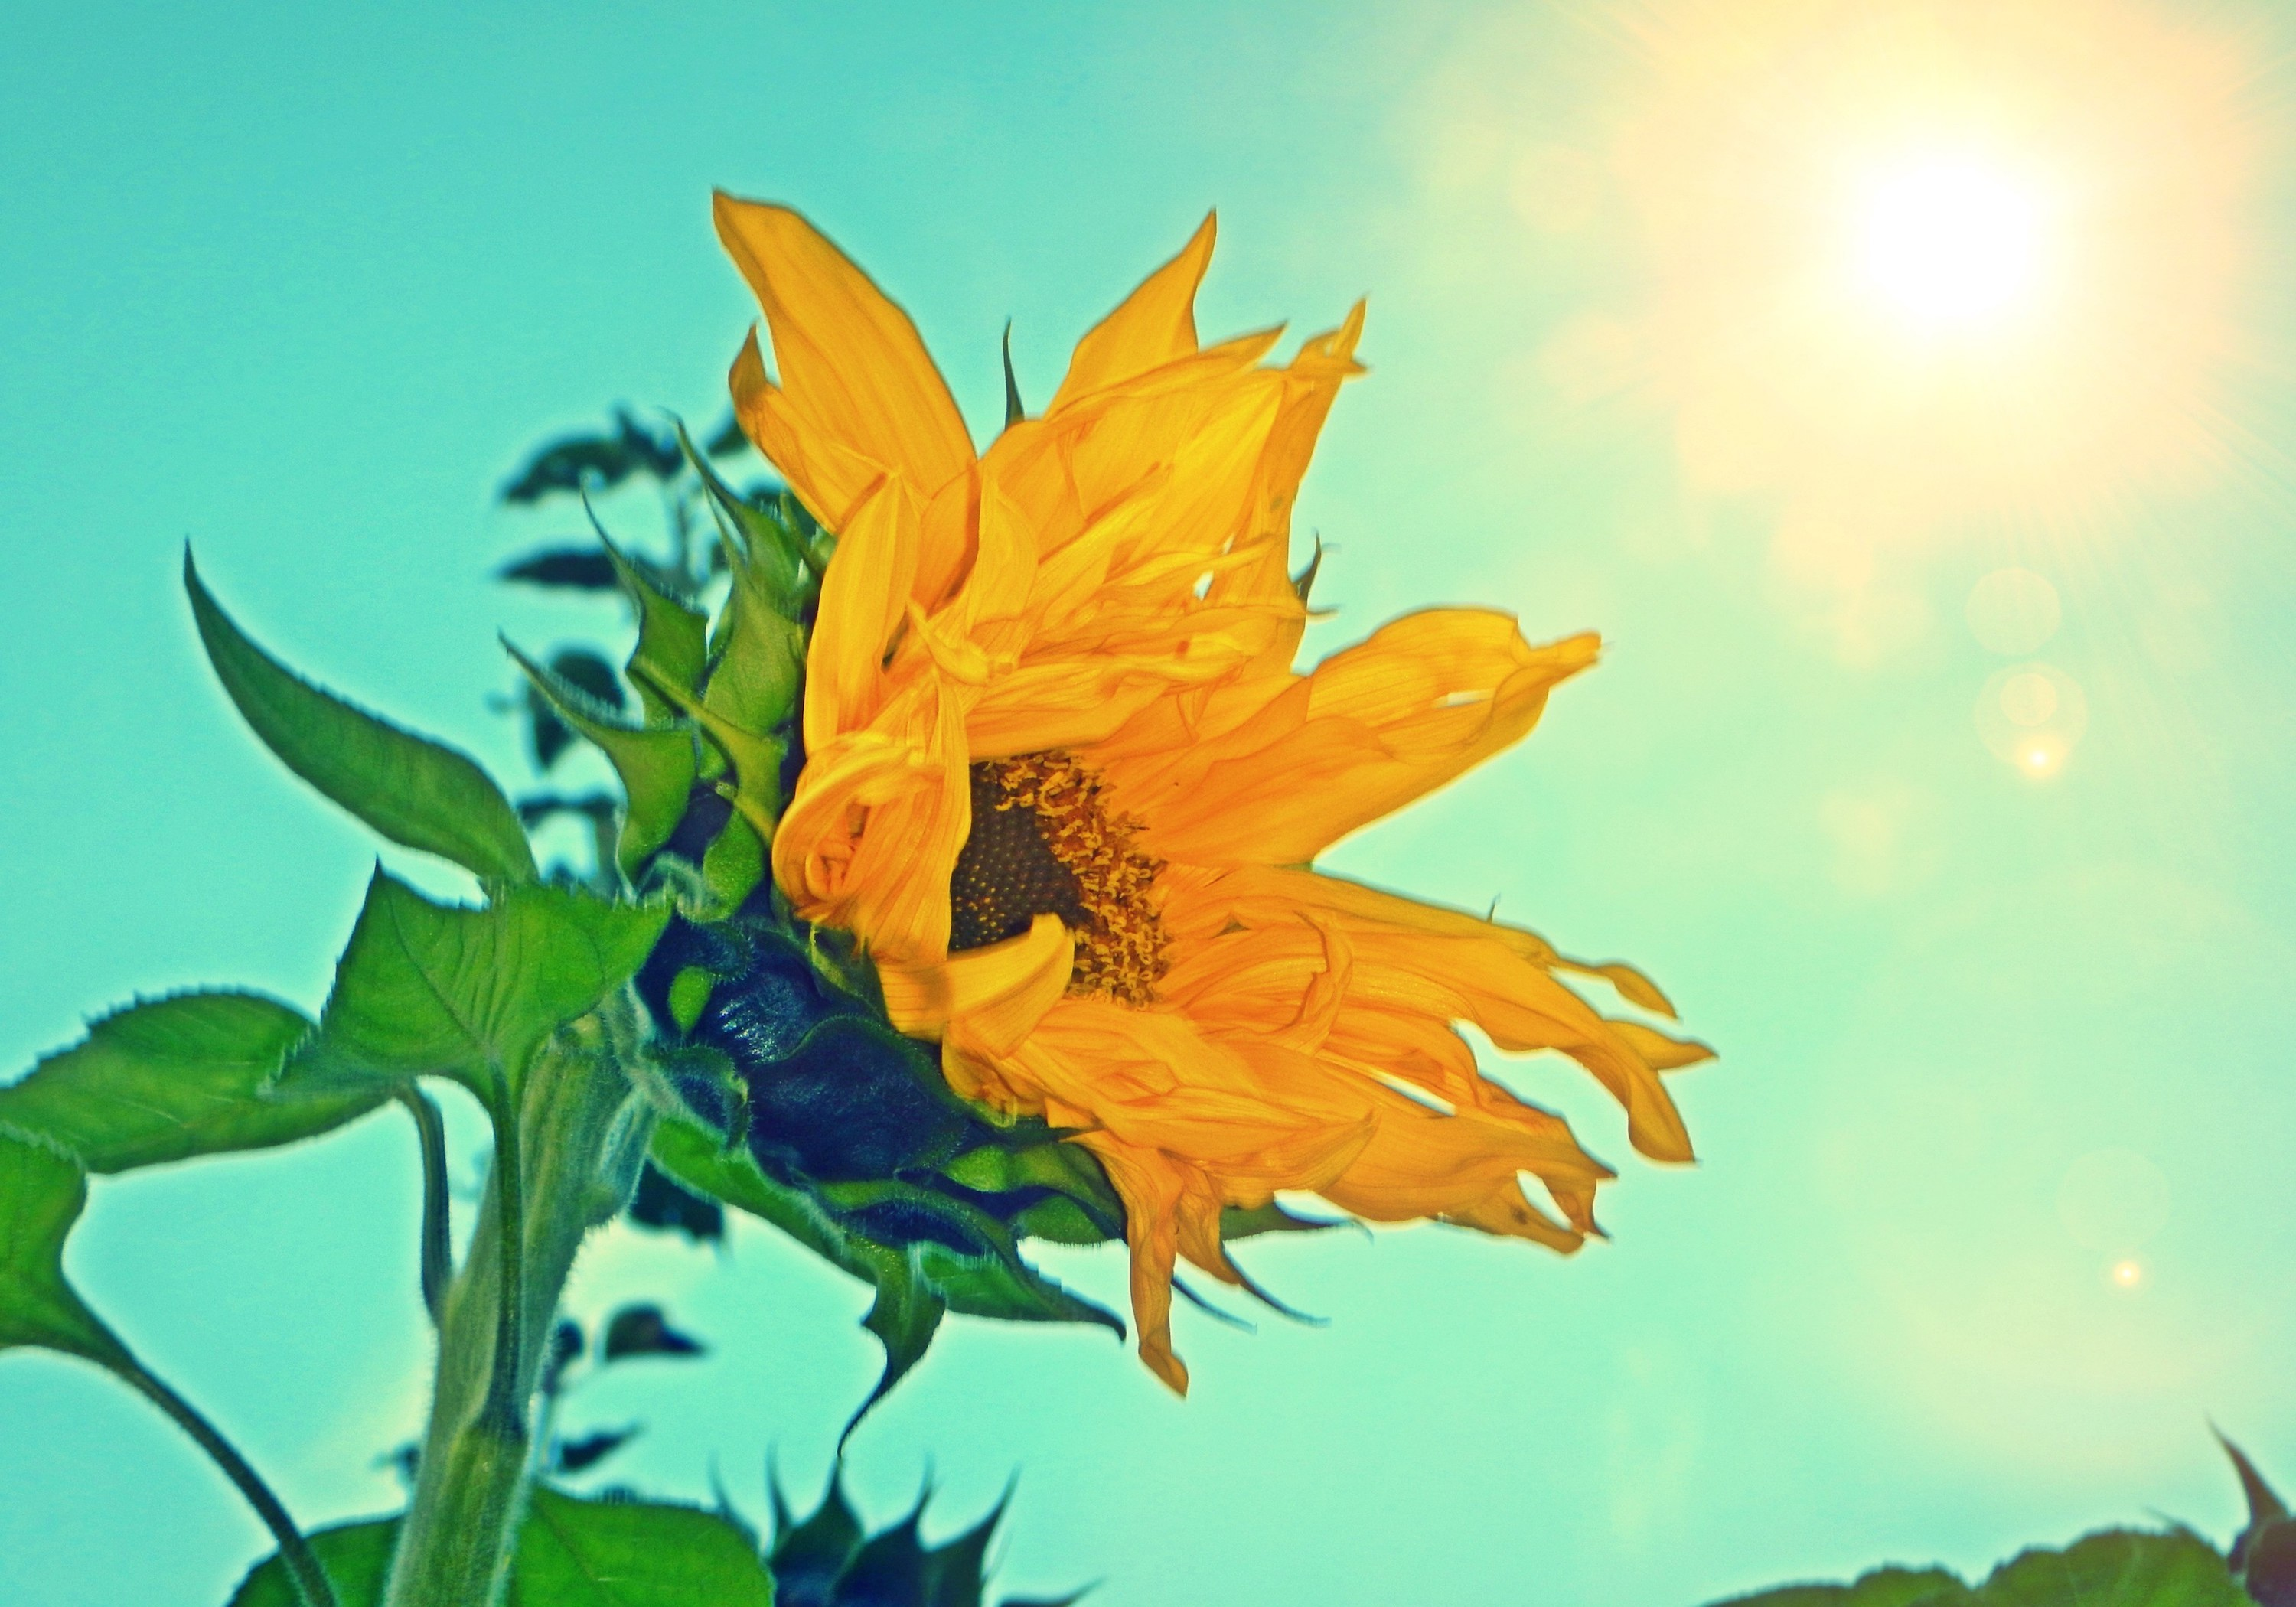 Basking Sunflower